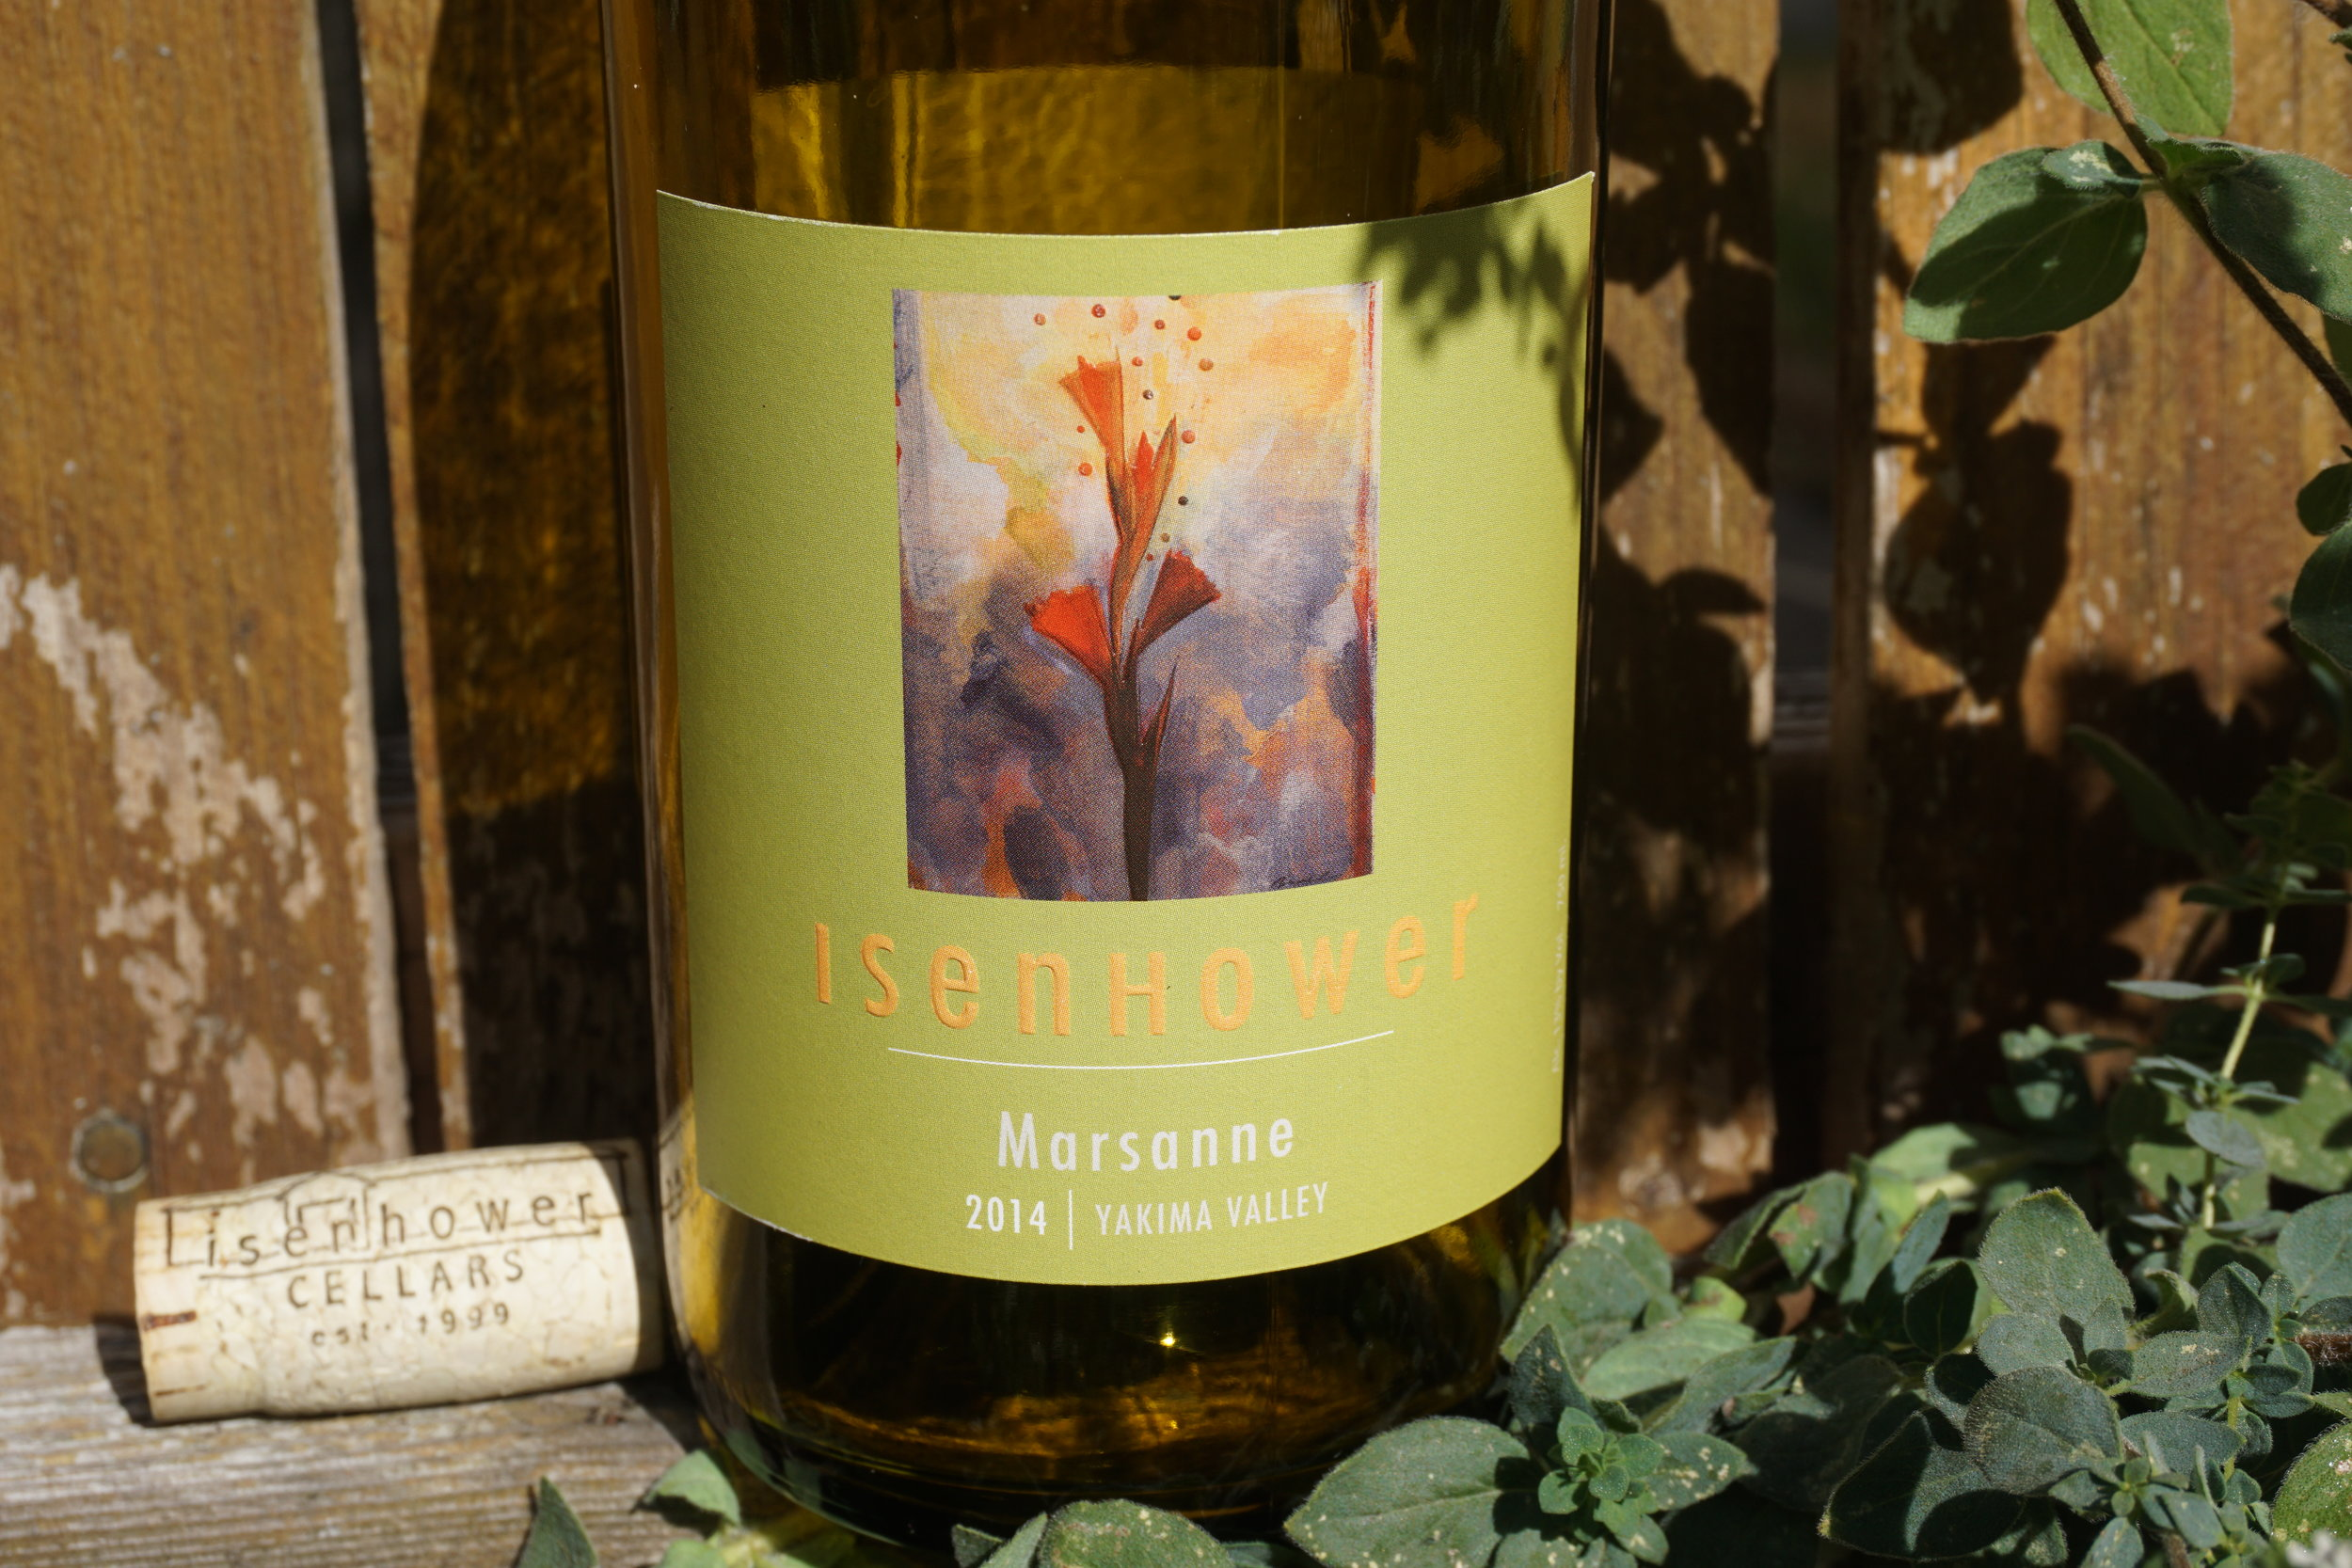 Isenhower Cellars Yakima Valley 2014 Marsanne is a unique blend to substitute a more commonly drank varietal such as chardonnay and the addition of roussanne and viognier solidify it as a Rhône-style wine. Viki Eierdam